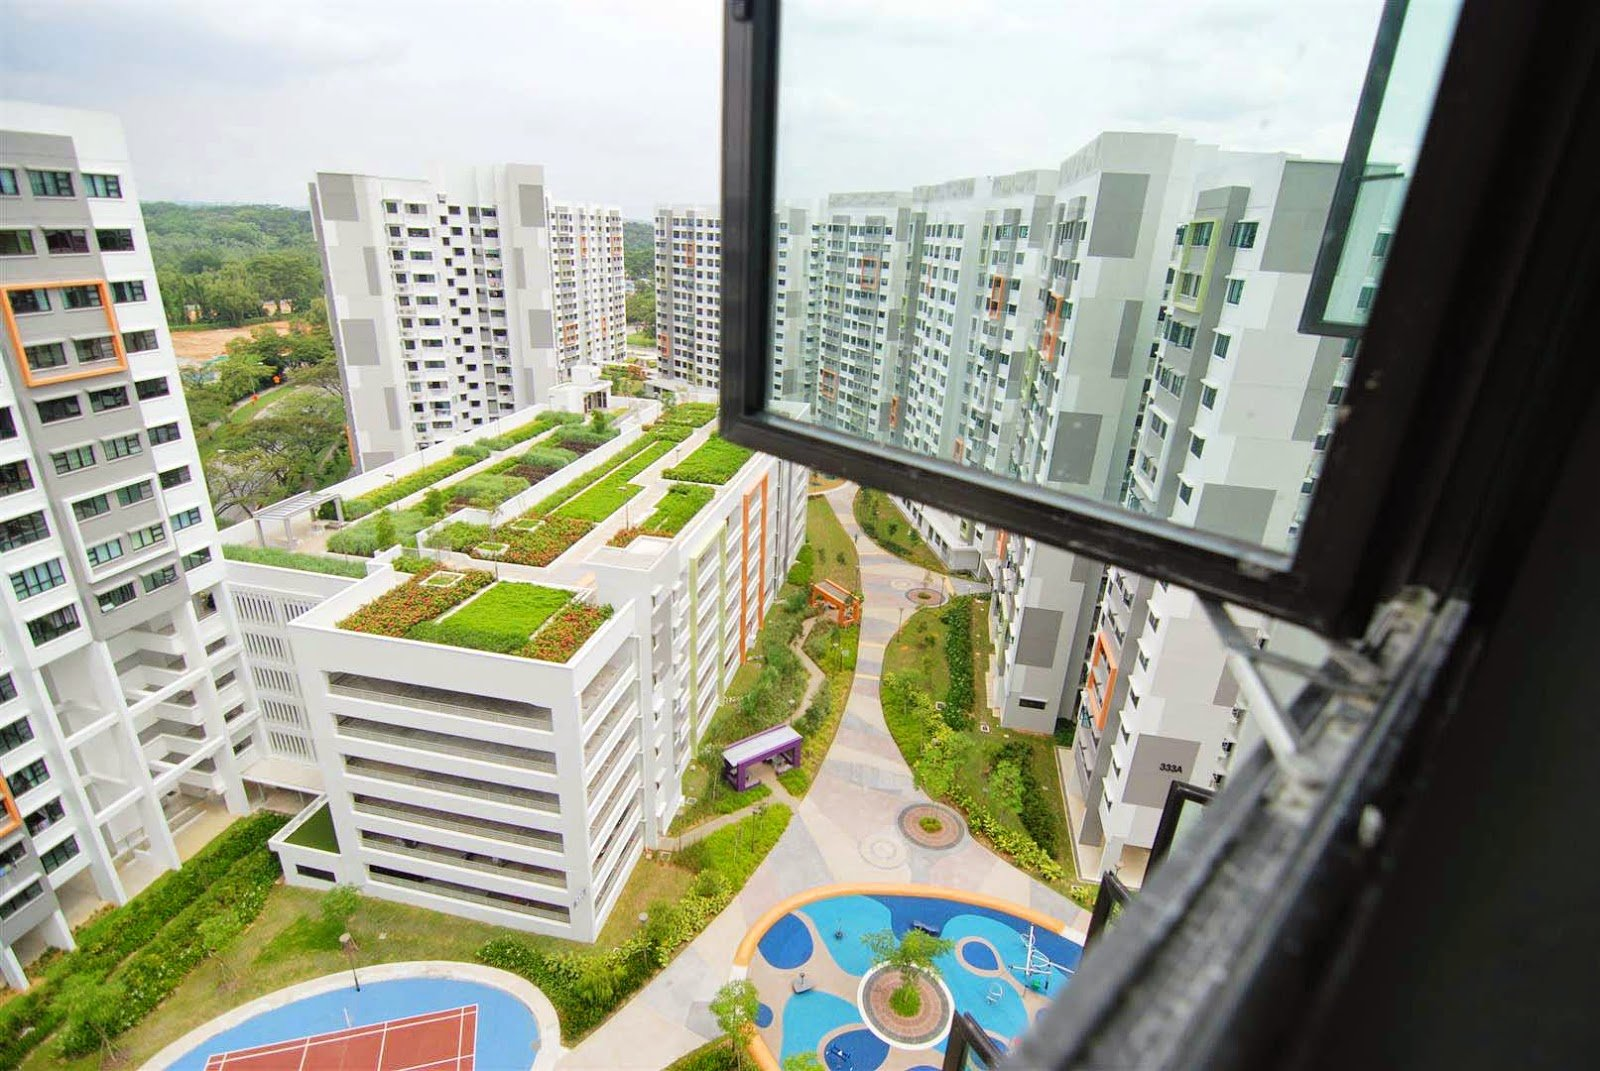 yishun-hdb-rental-march-2020